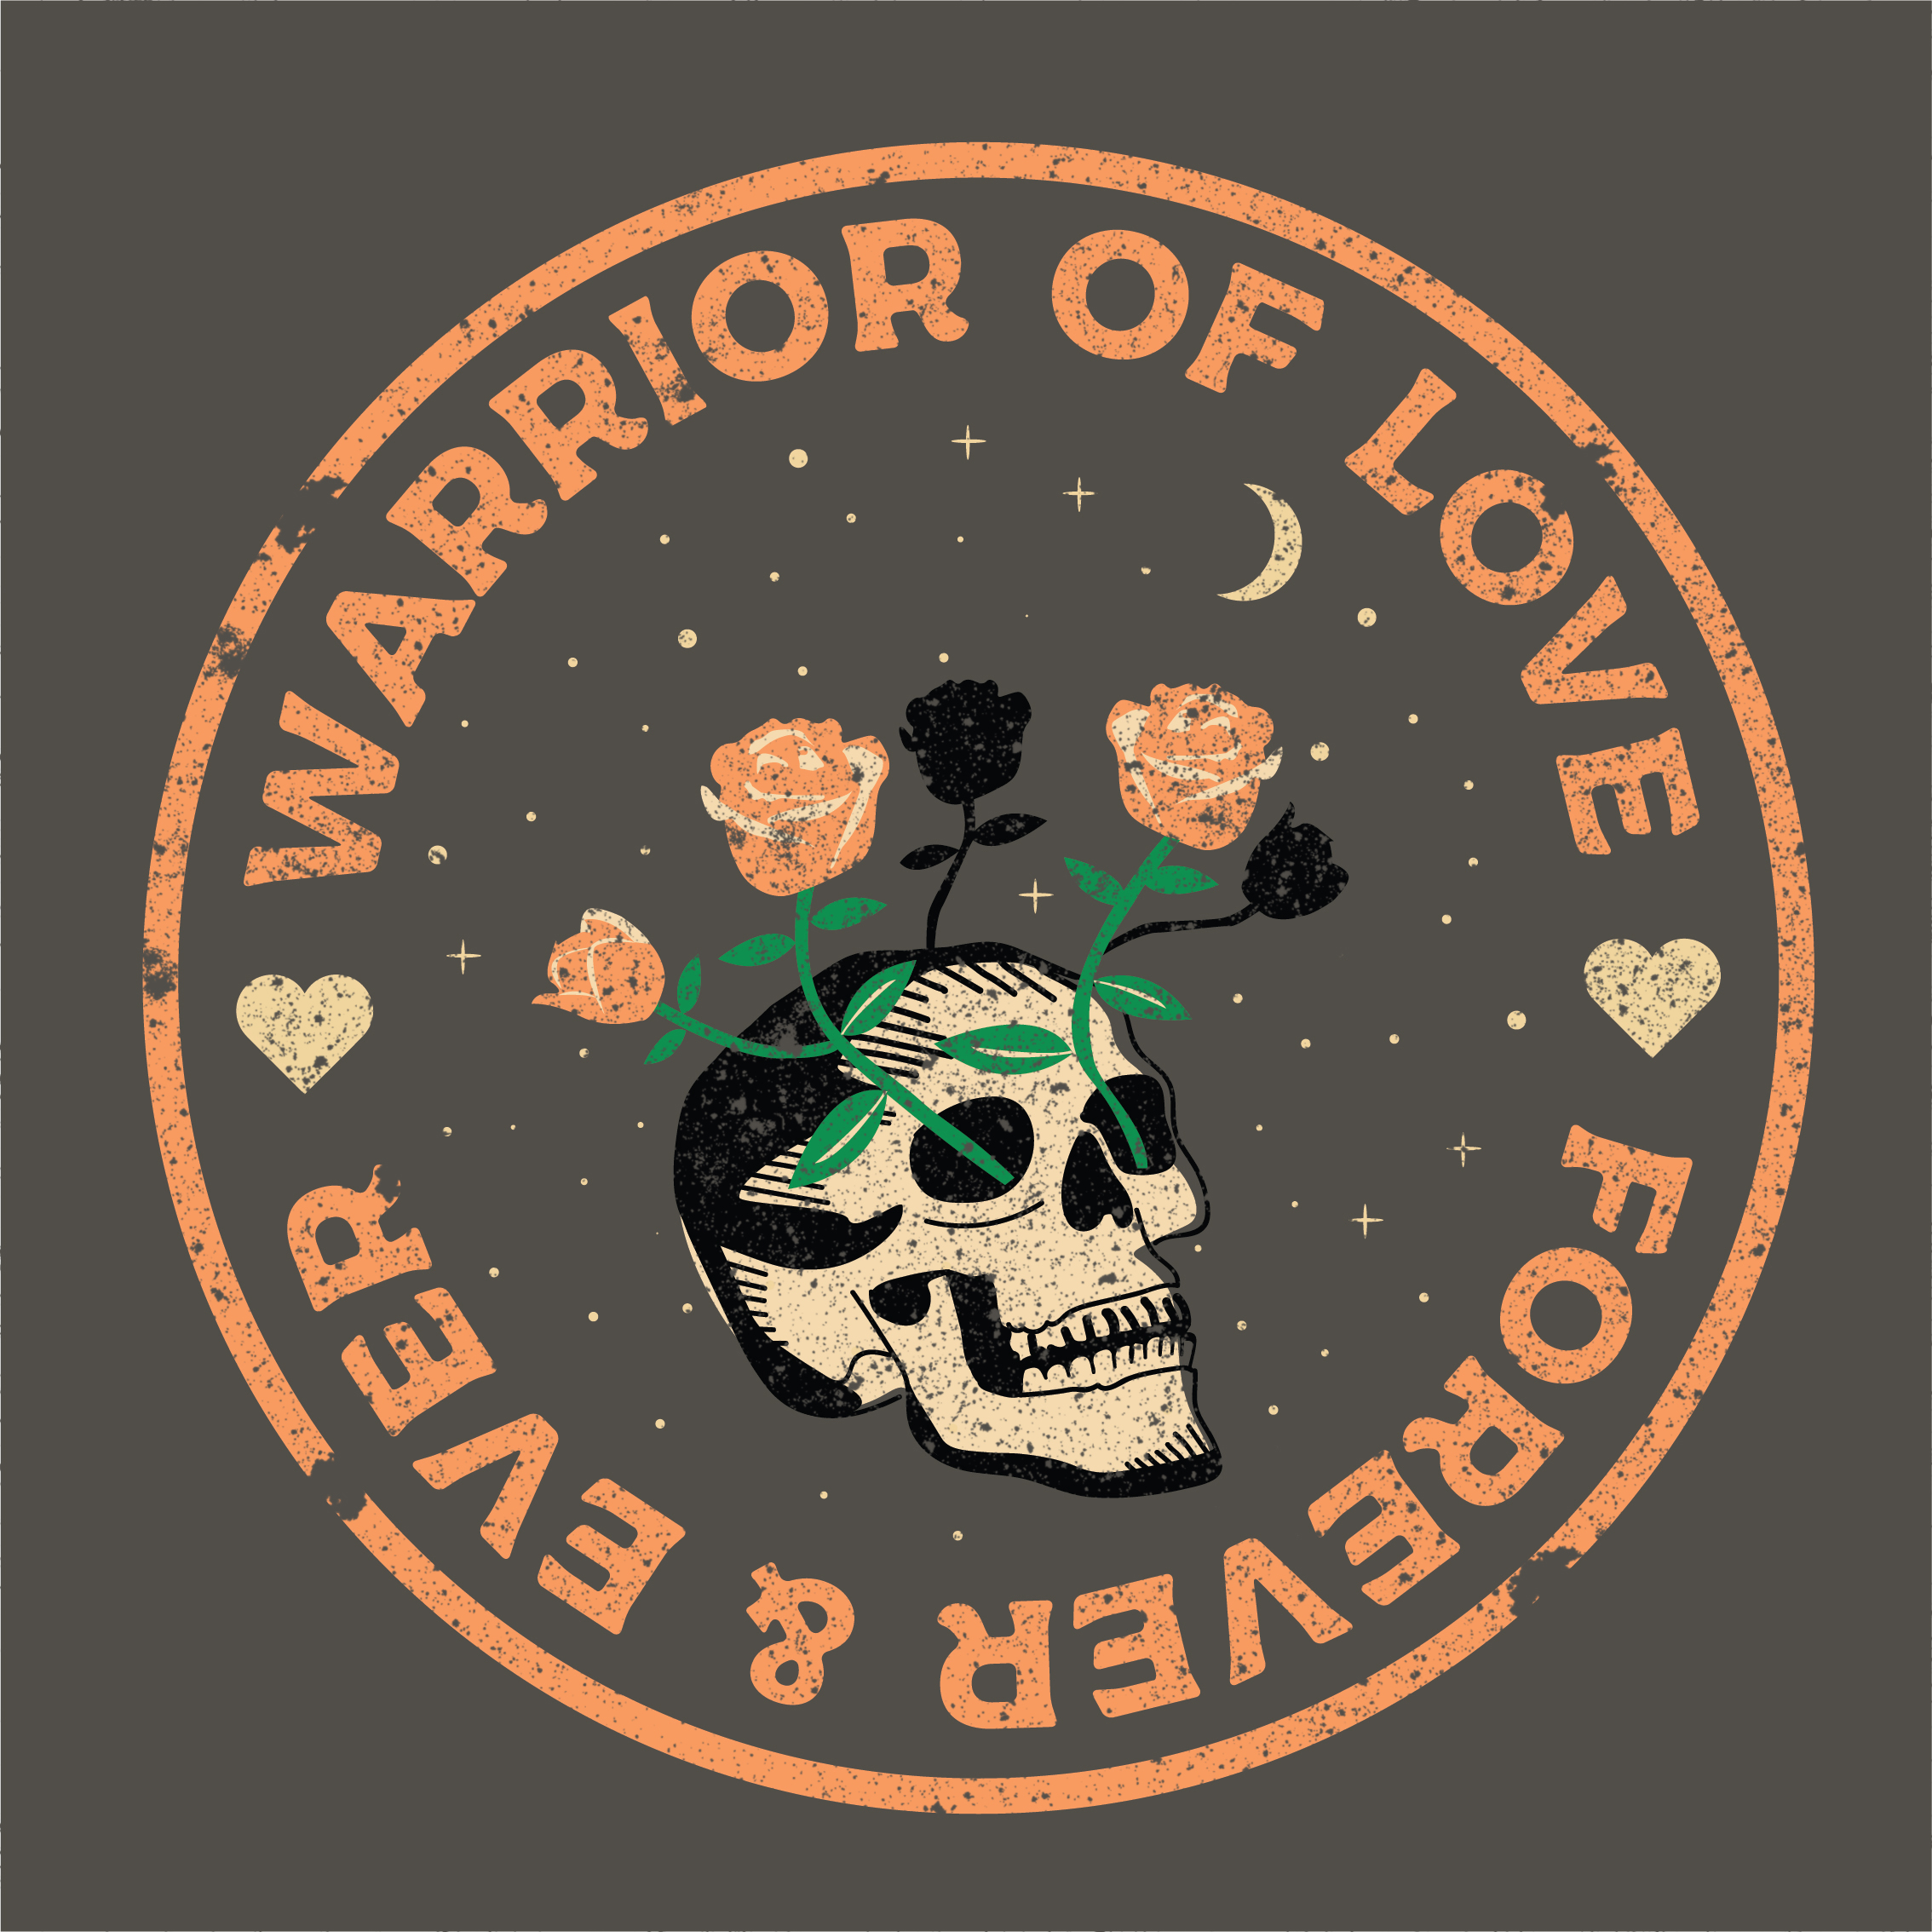 warrioroflove-09.jpg